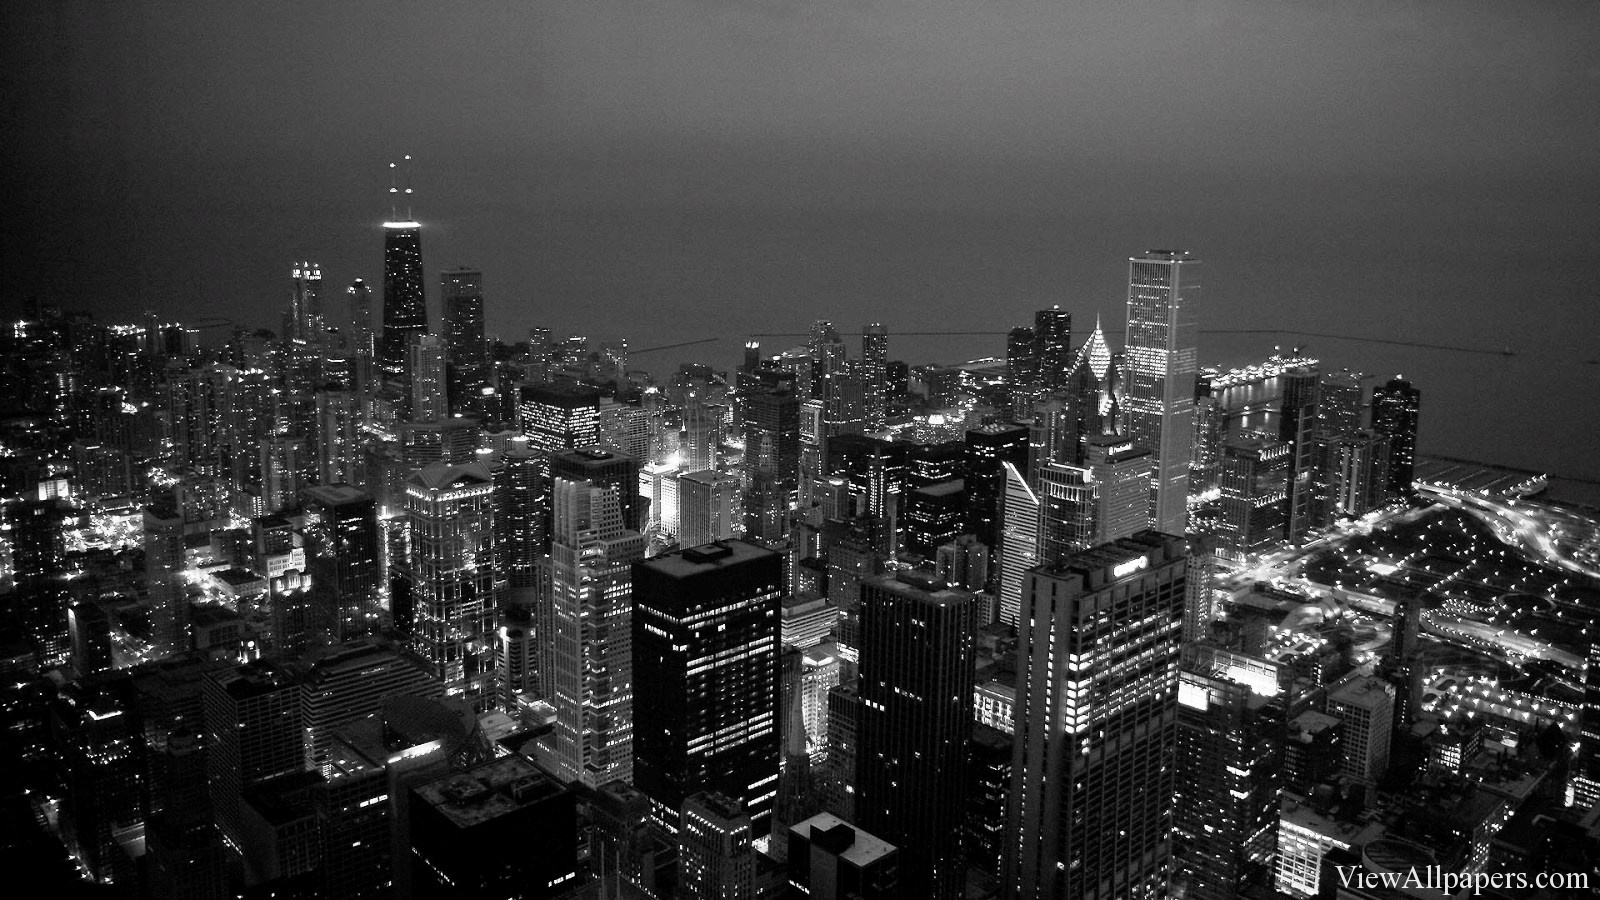 Black And White City HD Wallpaper For PC computers desktop background 1600x900